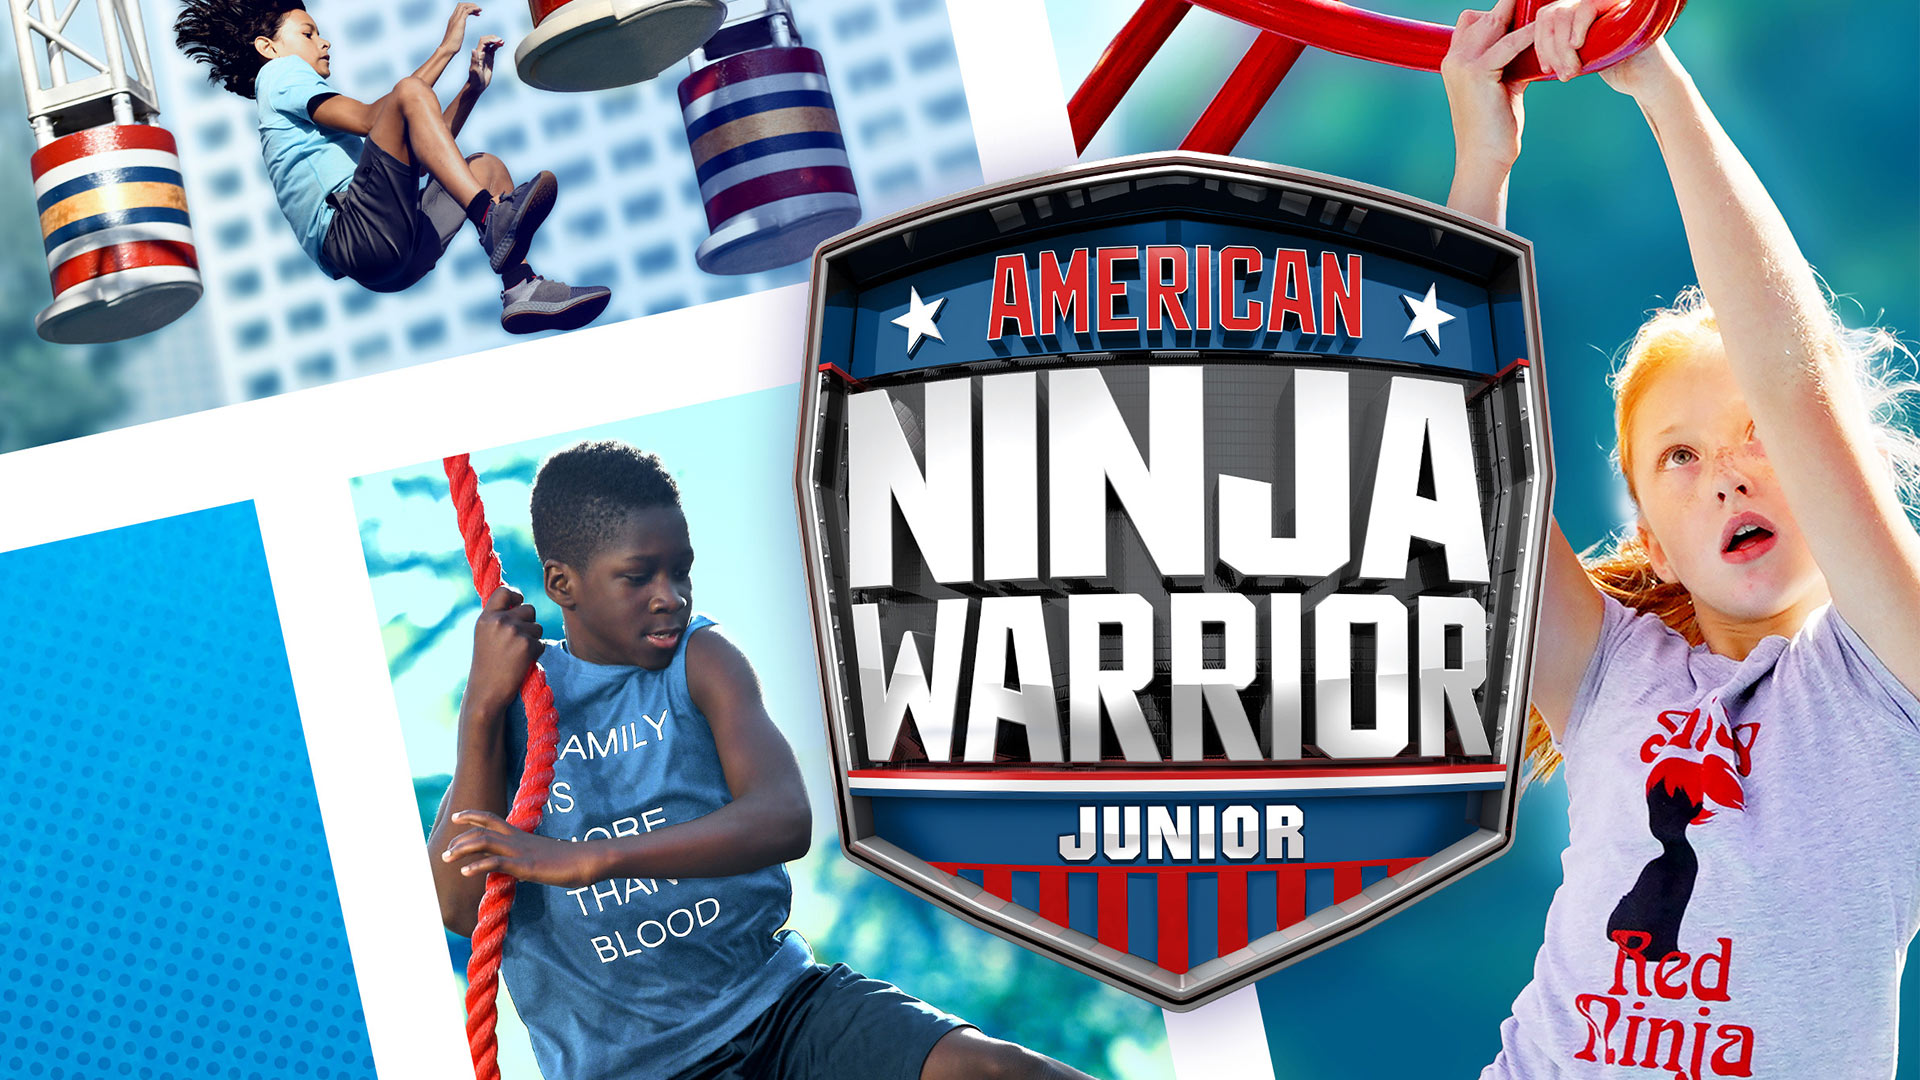 Watch Team Ninja Warrior, Season 1 | Prime Video